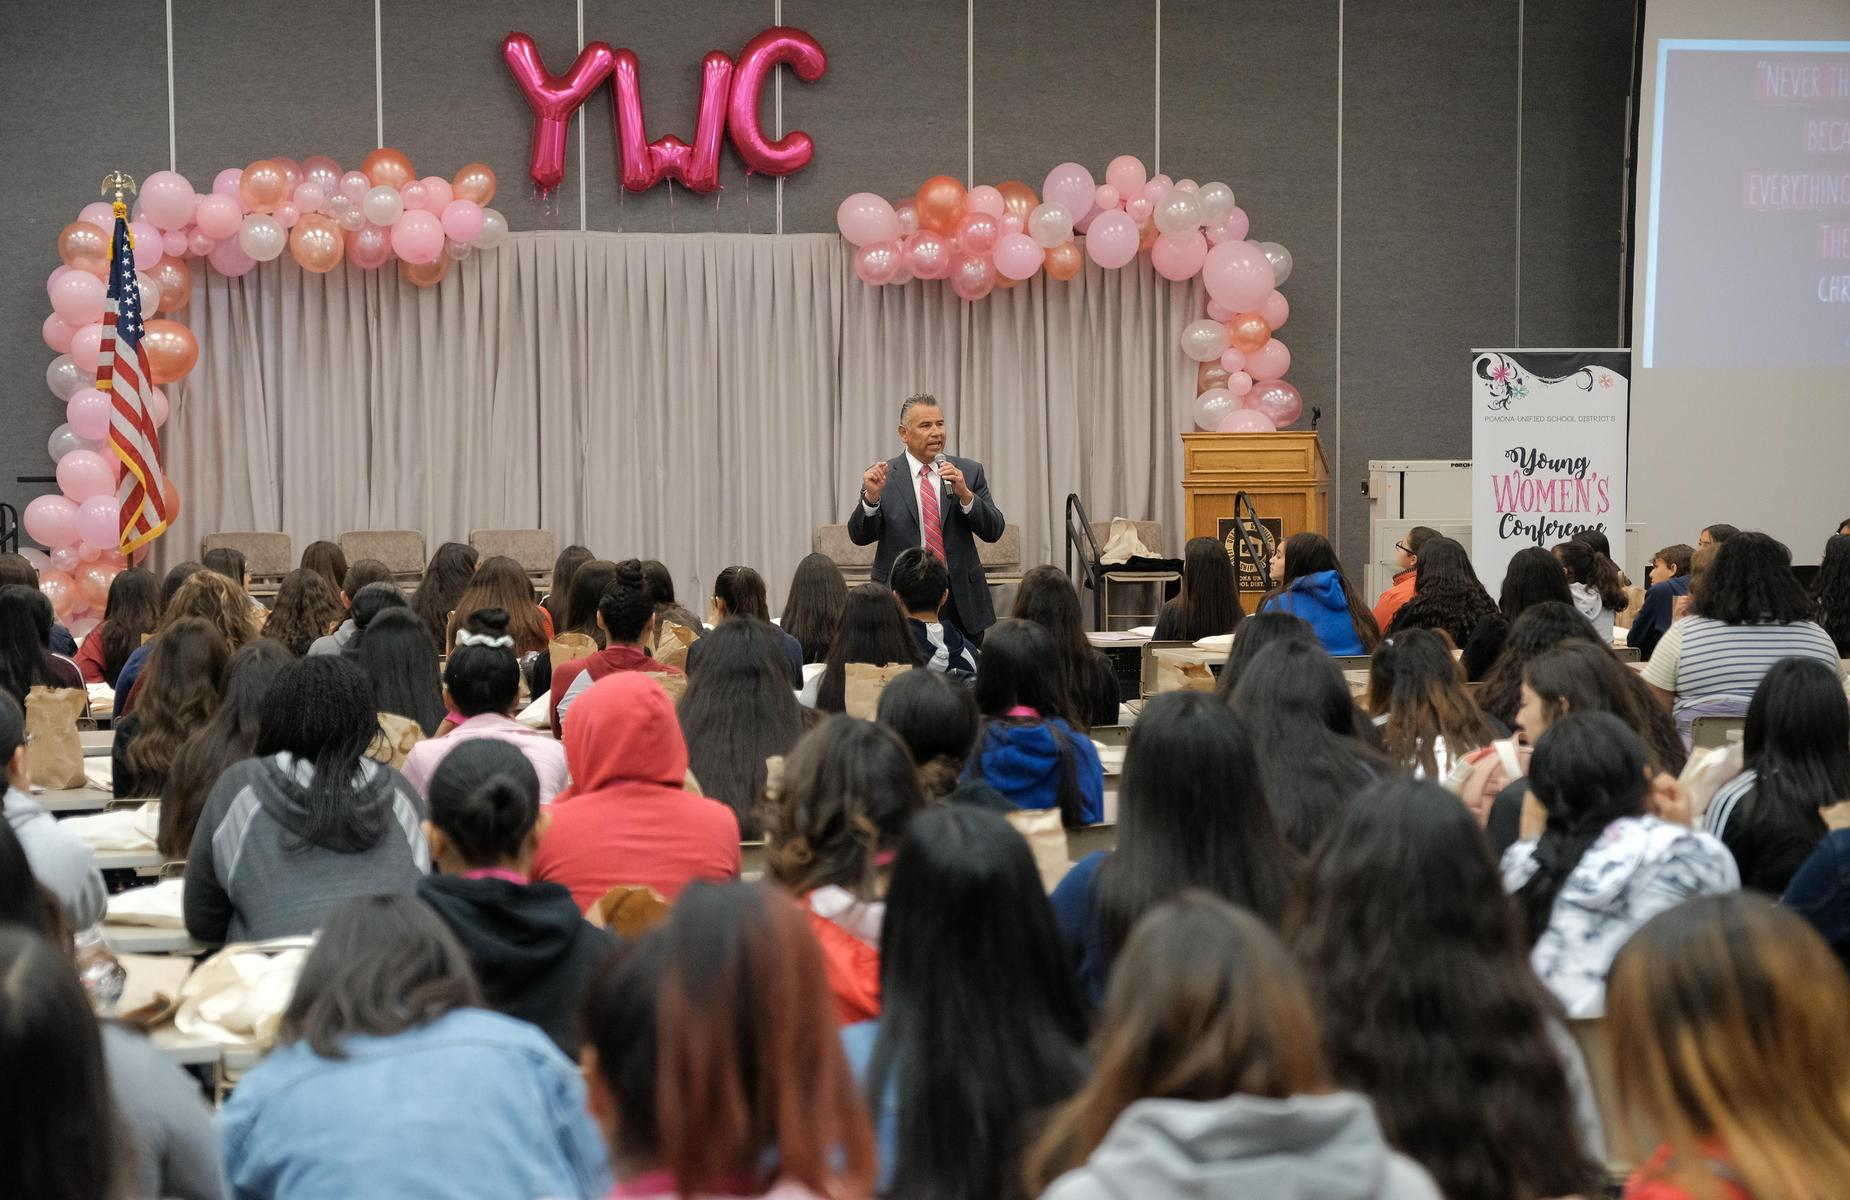 Superintendent Welcomes Students at the Annual Young Women's Conference